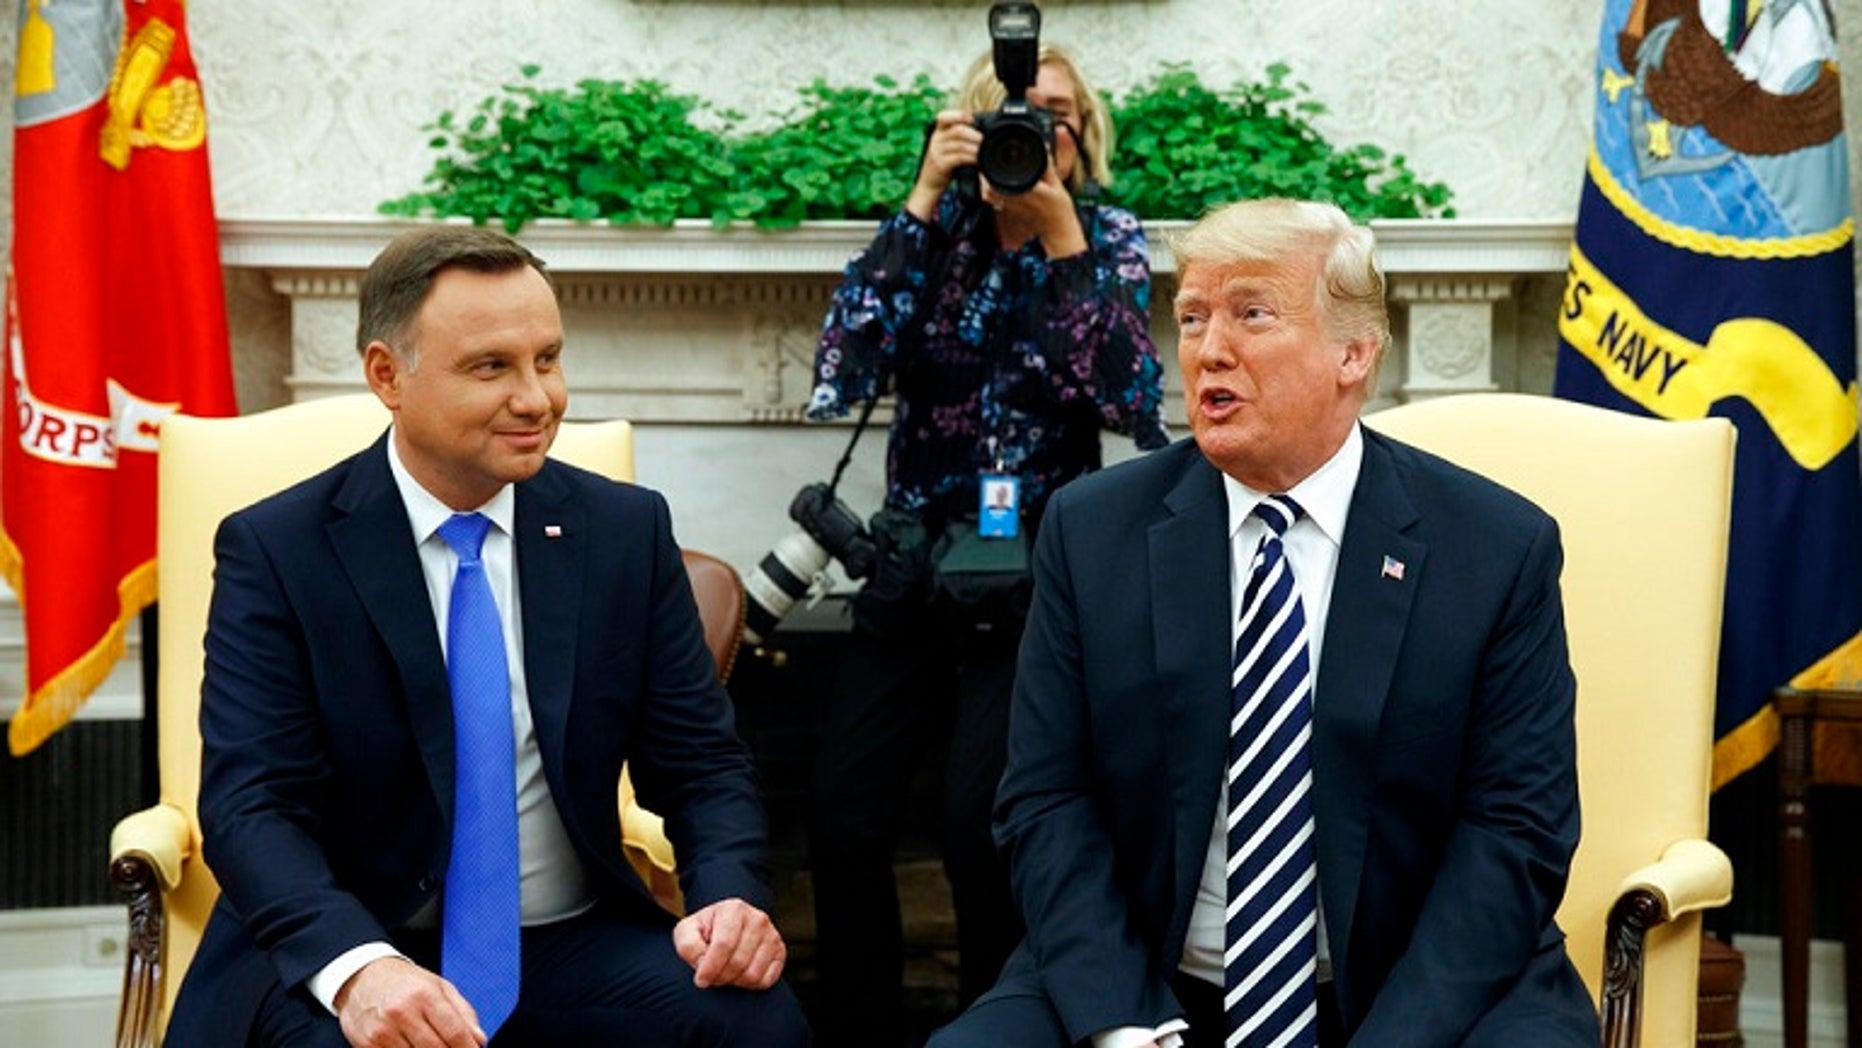 President Trump and Polish President Andrzej Duda in the Oval Office on Tuesday.